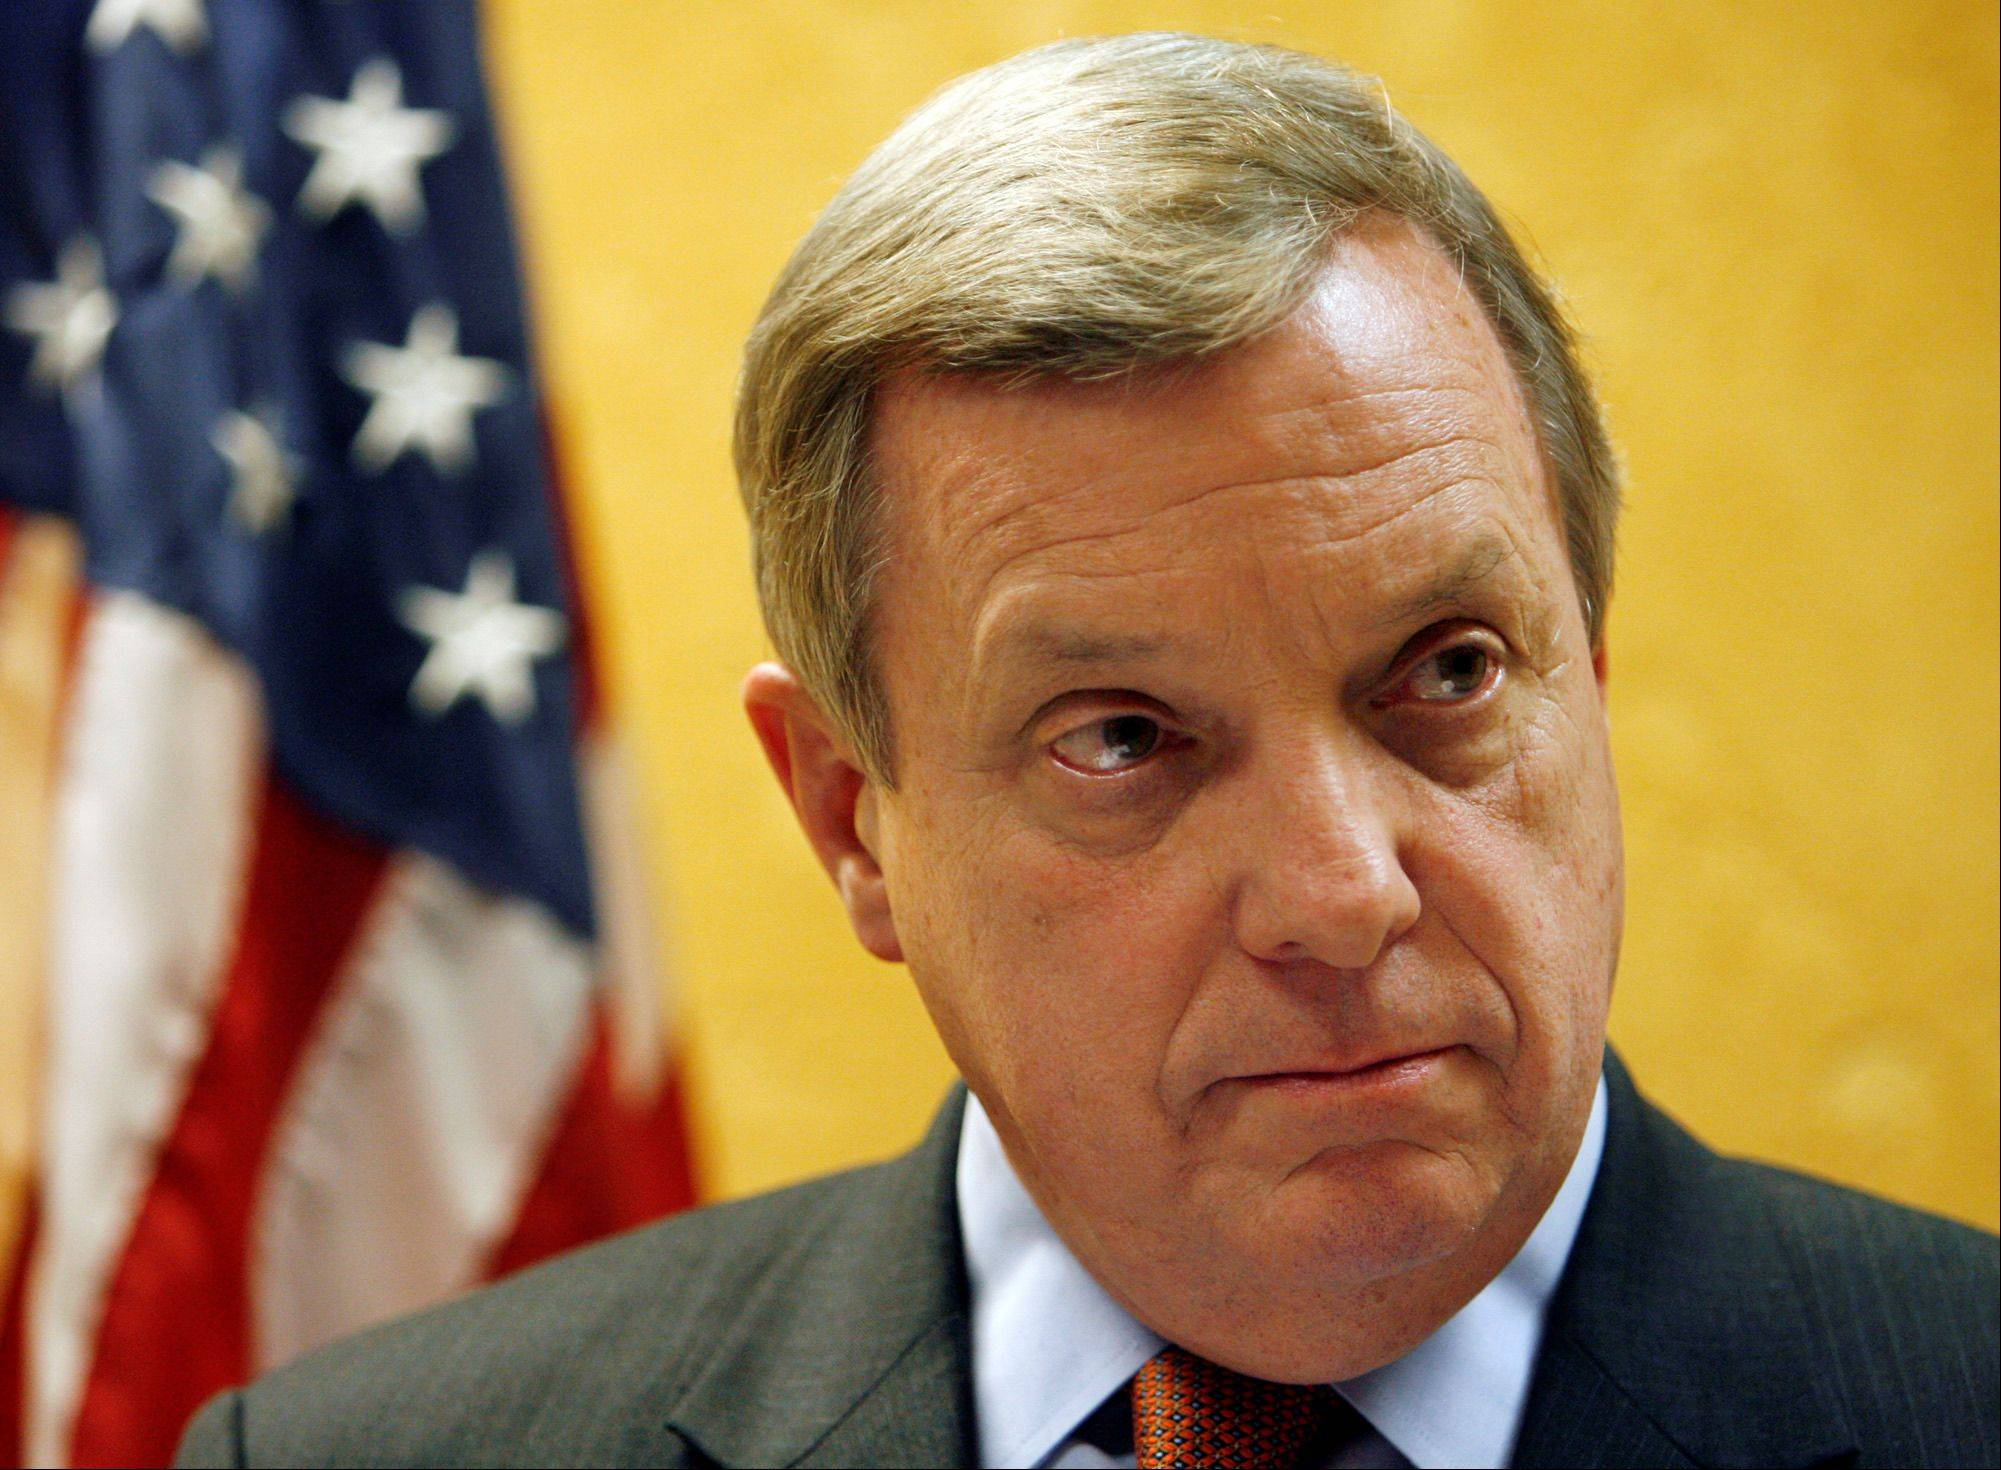 U.S. Sen. Dick Durbin, seen here in 2009, stopped in Aurora yesterday to tout President Obama's jobs plan. Durbin said Congress must get people back to work before tackling the budget deficit.